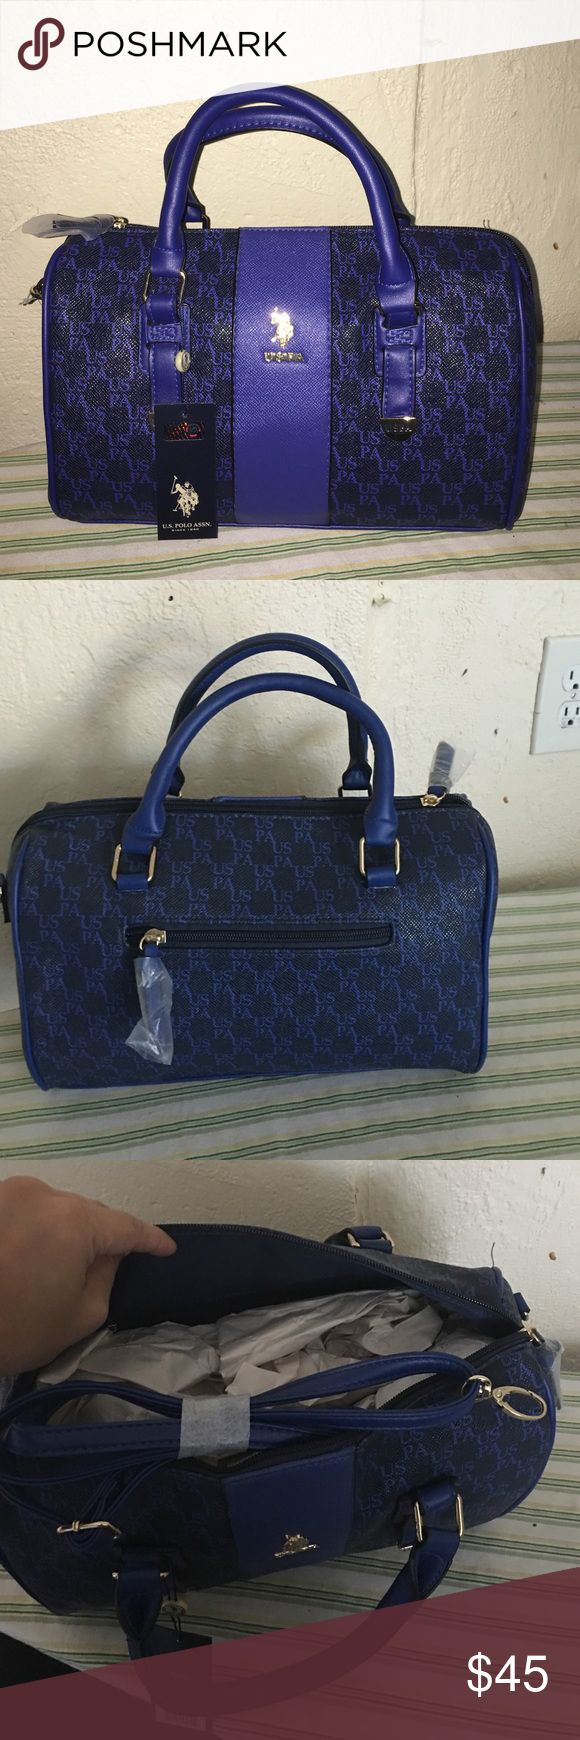 U.S Polo Assn blue handbag Reposhing.. Got from a wonderful posher but didn't had a chance to use it. Medium size brand new comes with crossbody strap. Leather. U.S. Polo Assn. Bags Satchels